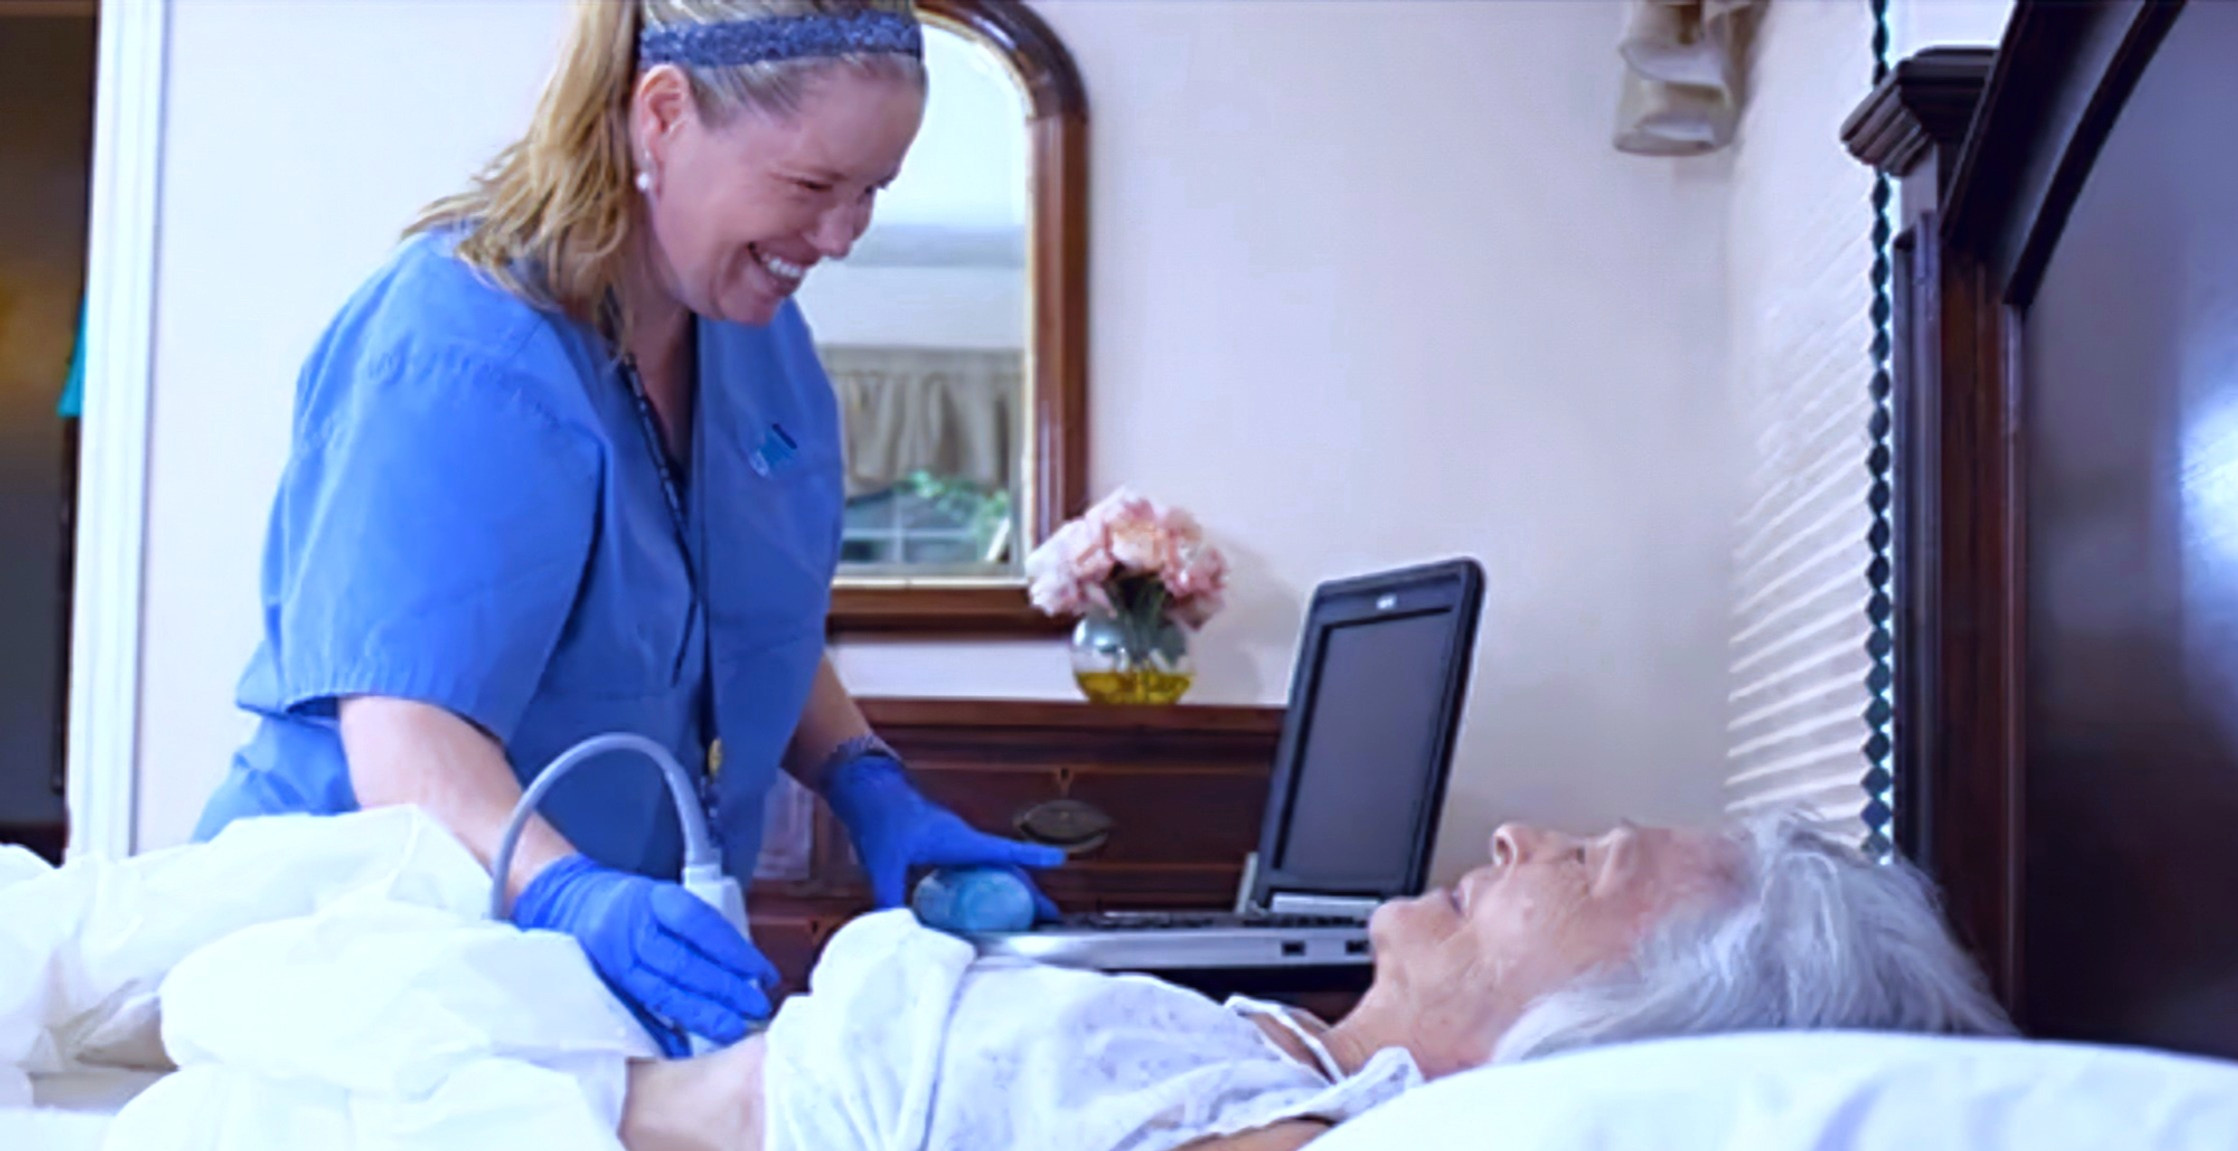 Emergency/ Mobile In-Home Ultrasound